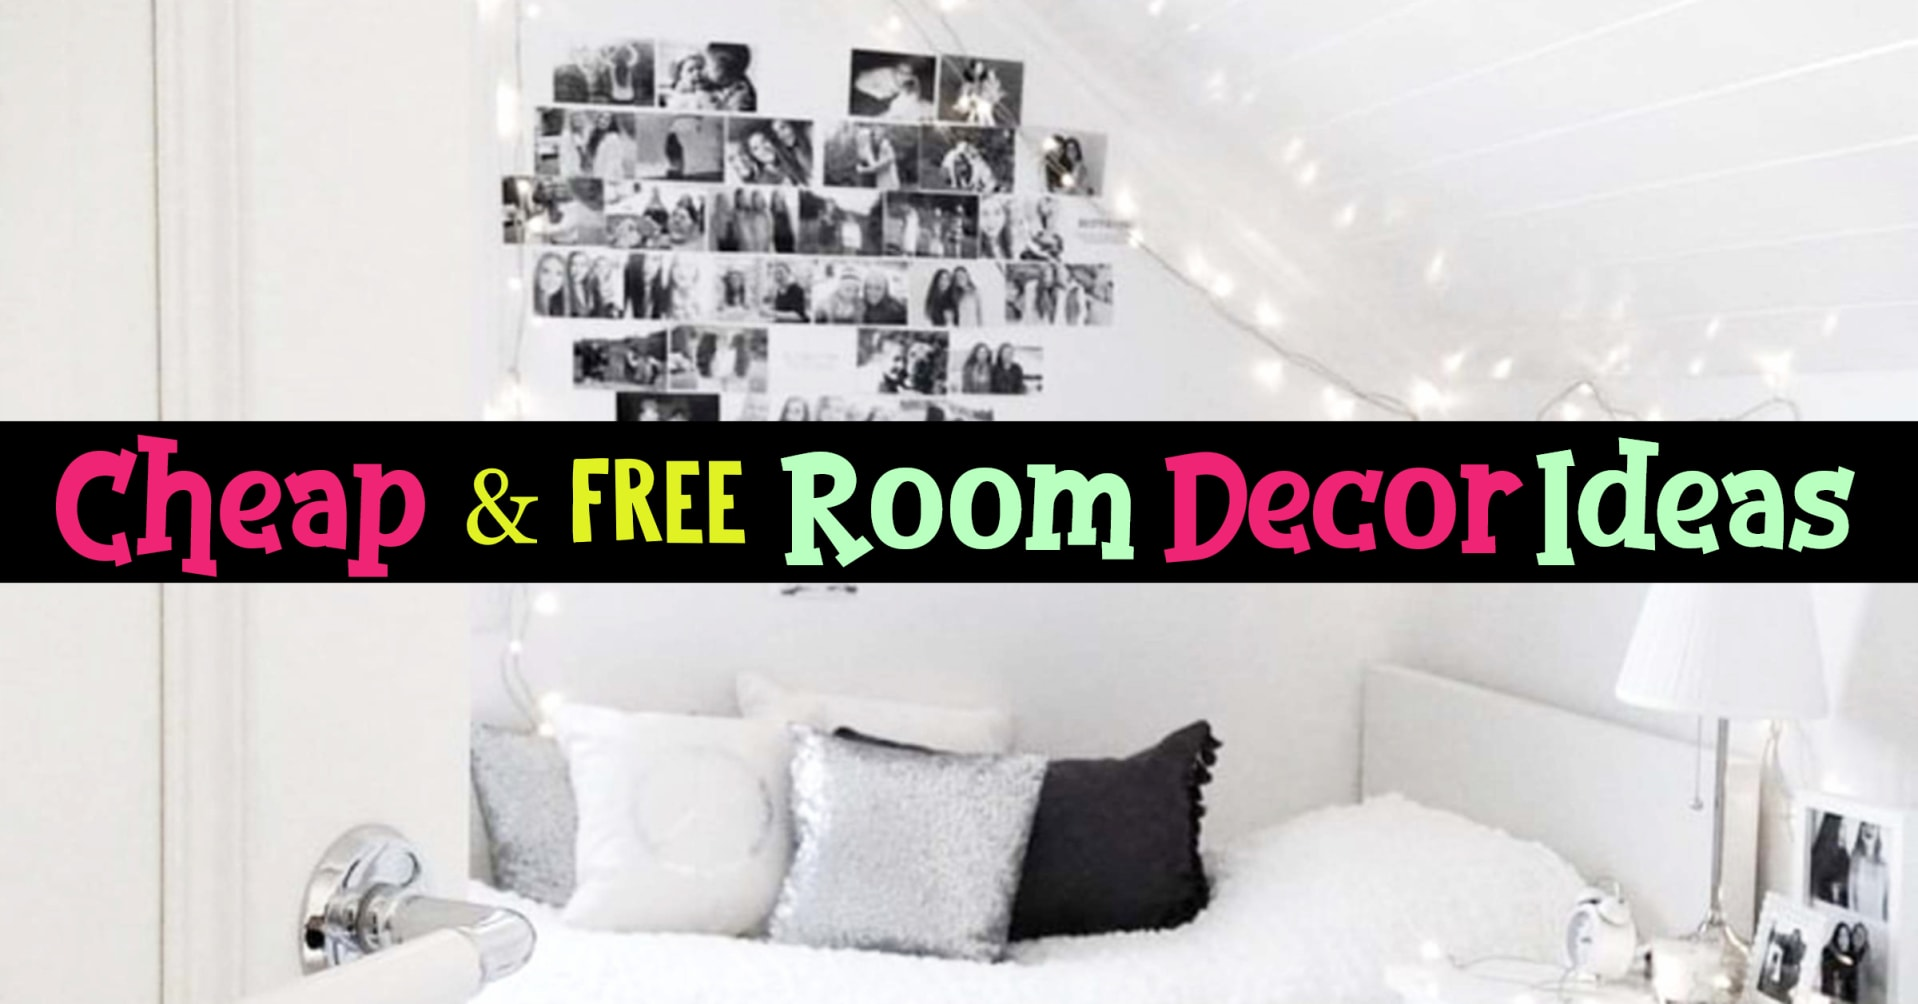 How To Decorate Your Room Without Ing Anything